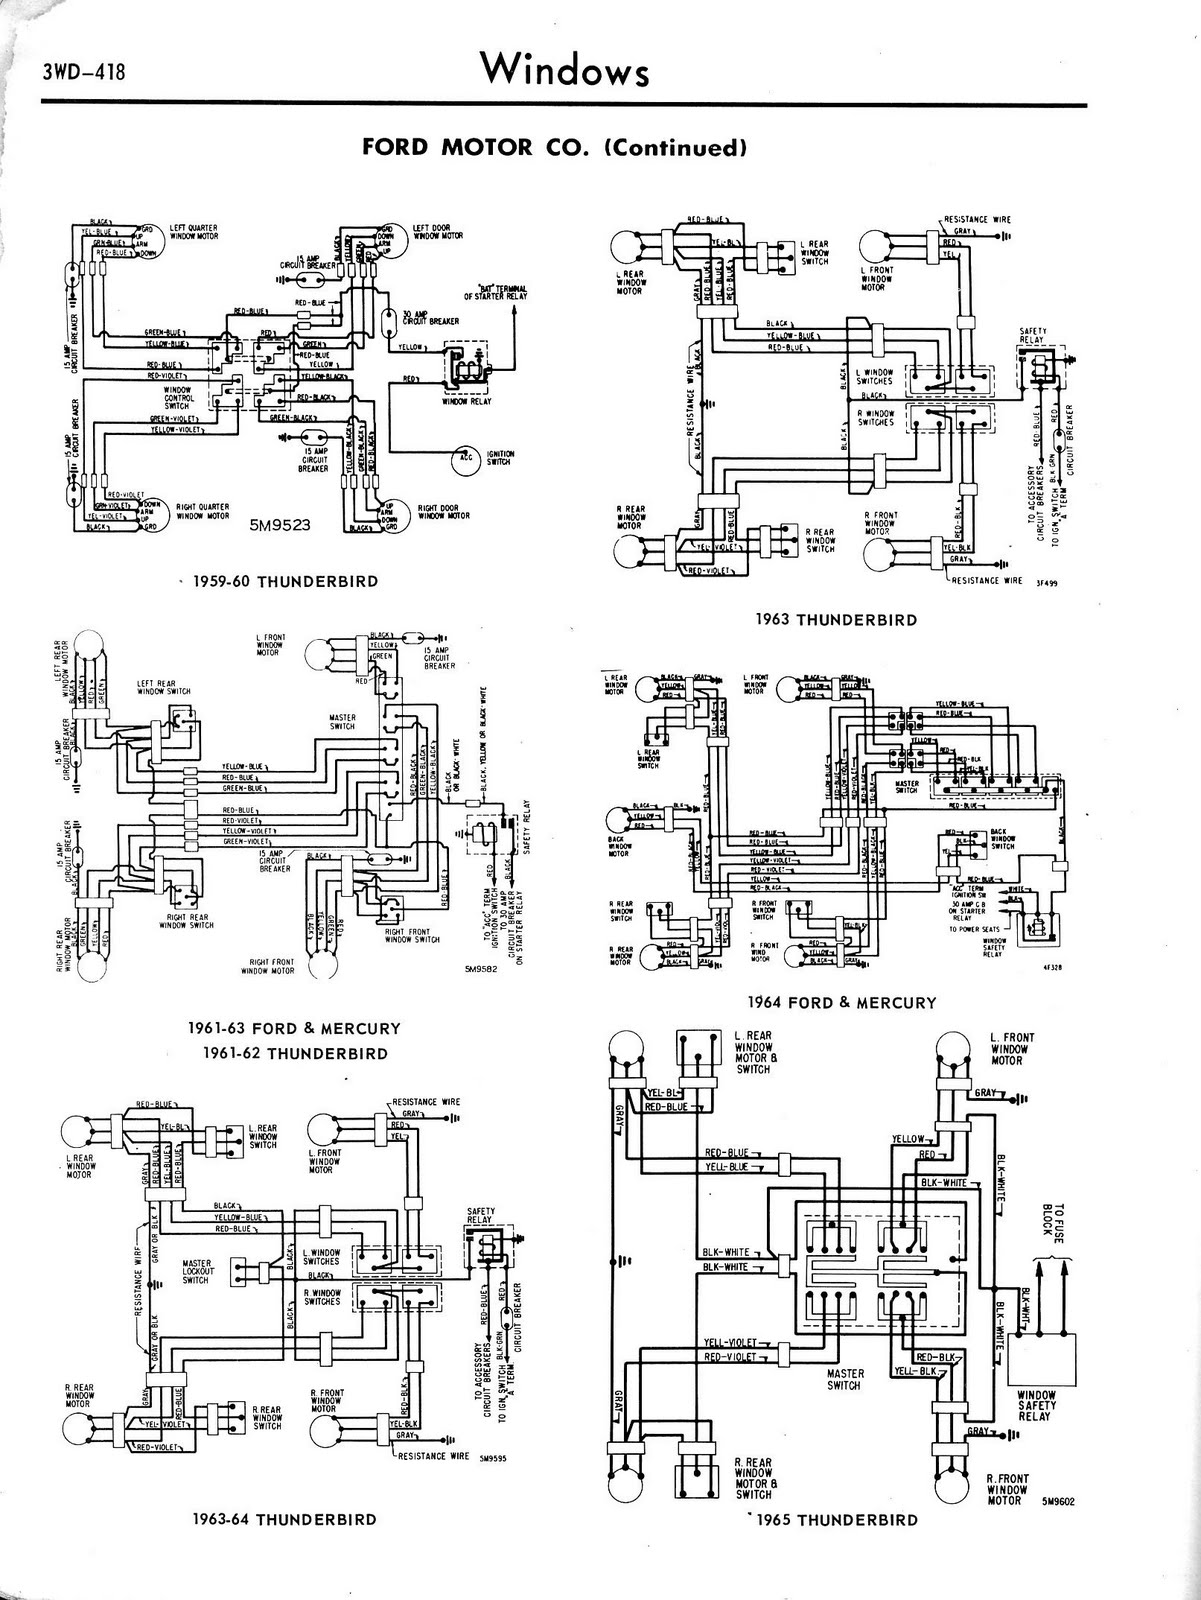 1965+Ford+Thunderbird+Window+Controls+Diagram 1964 thunderbird wiring diagram 1964 thunderbird stereo wiring 84 Ford Thunderbird Wiring Diagram at bakdesigns.co